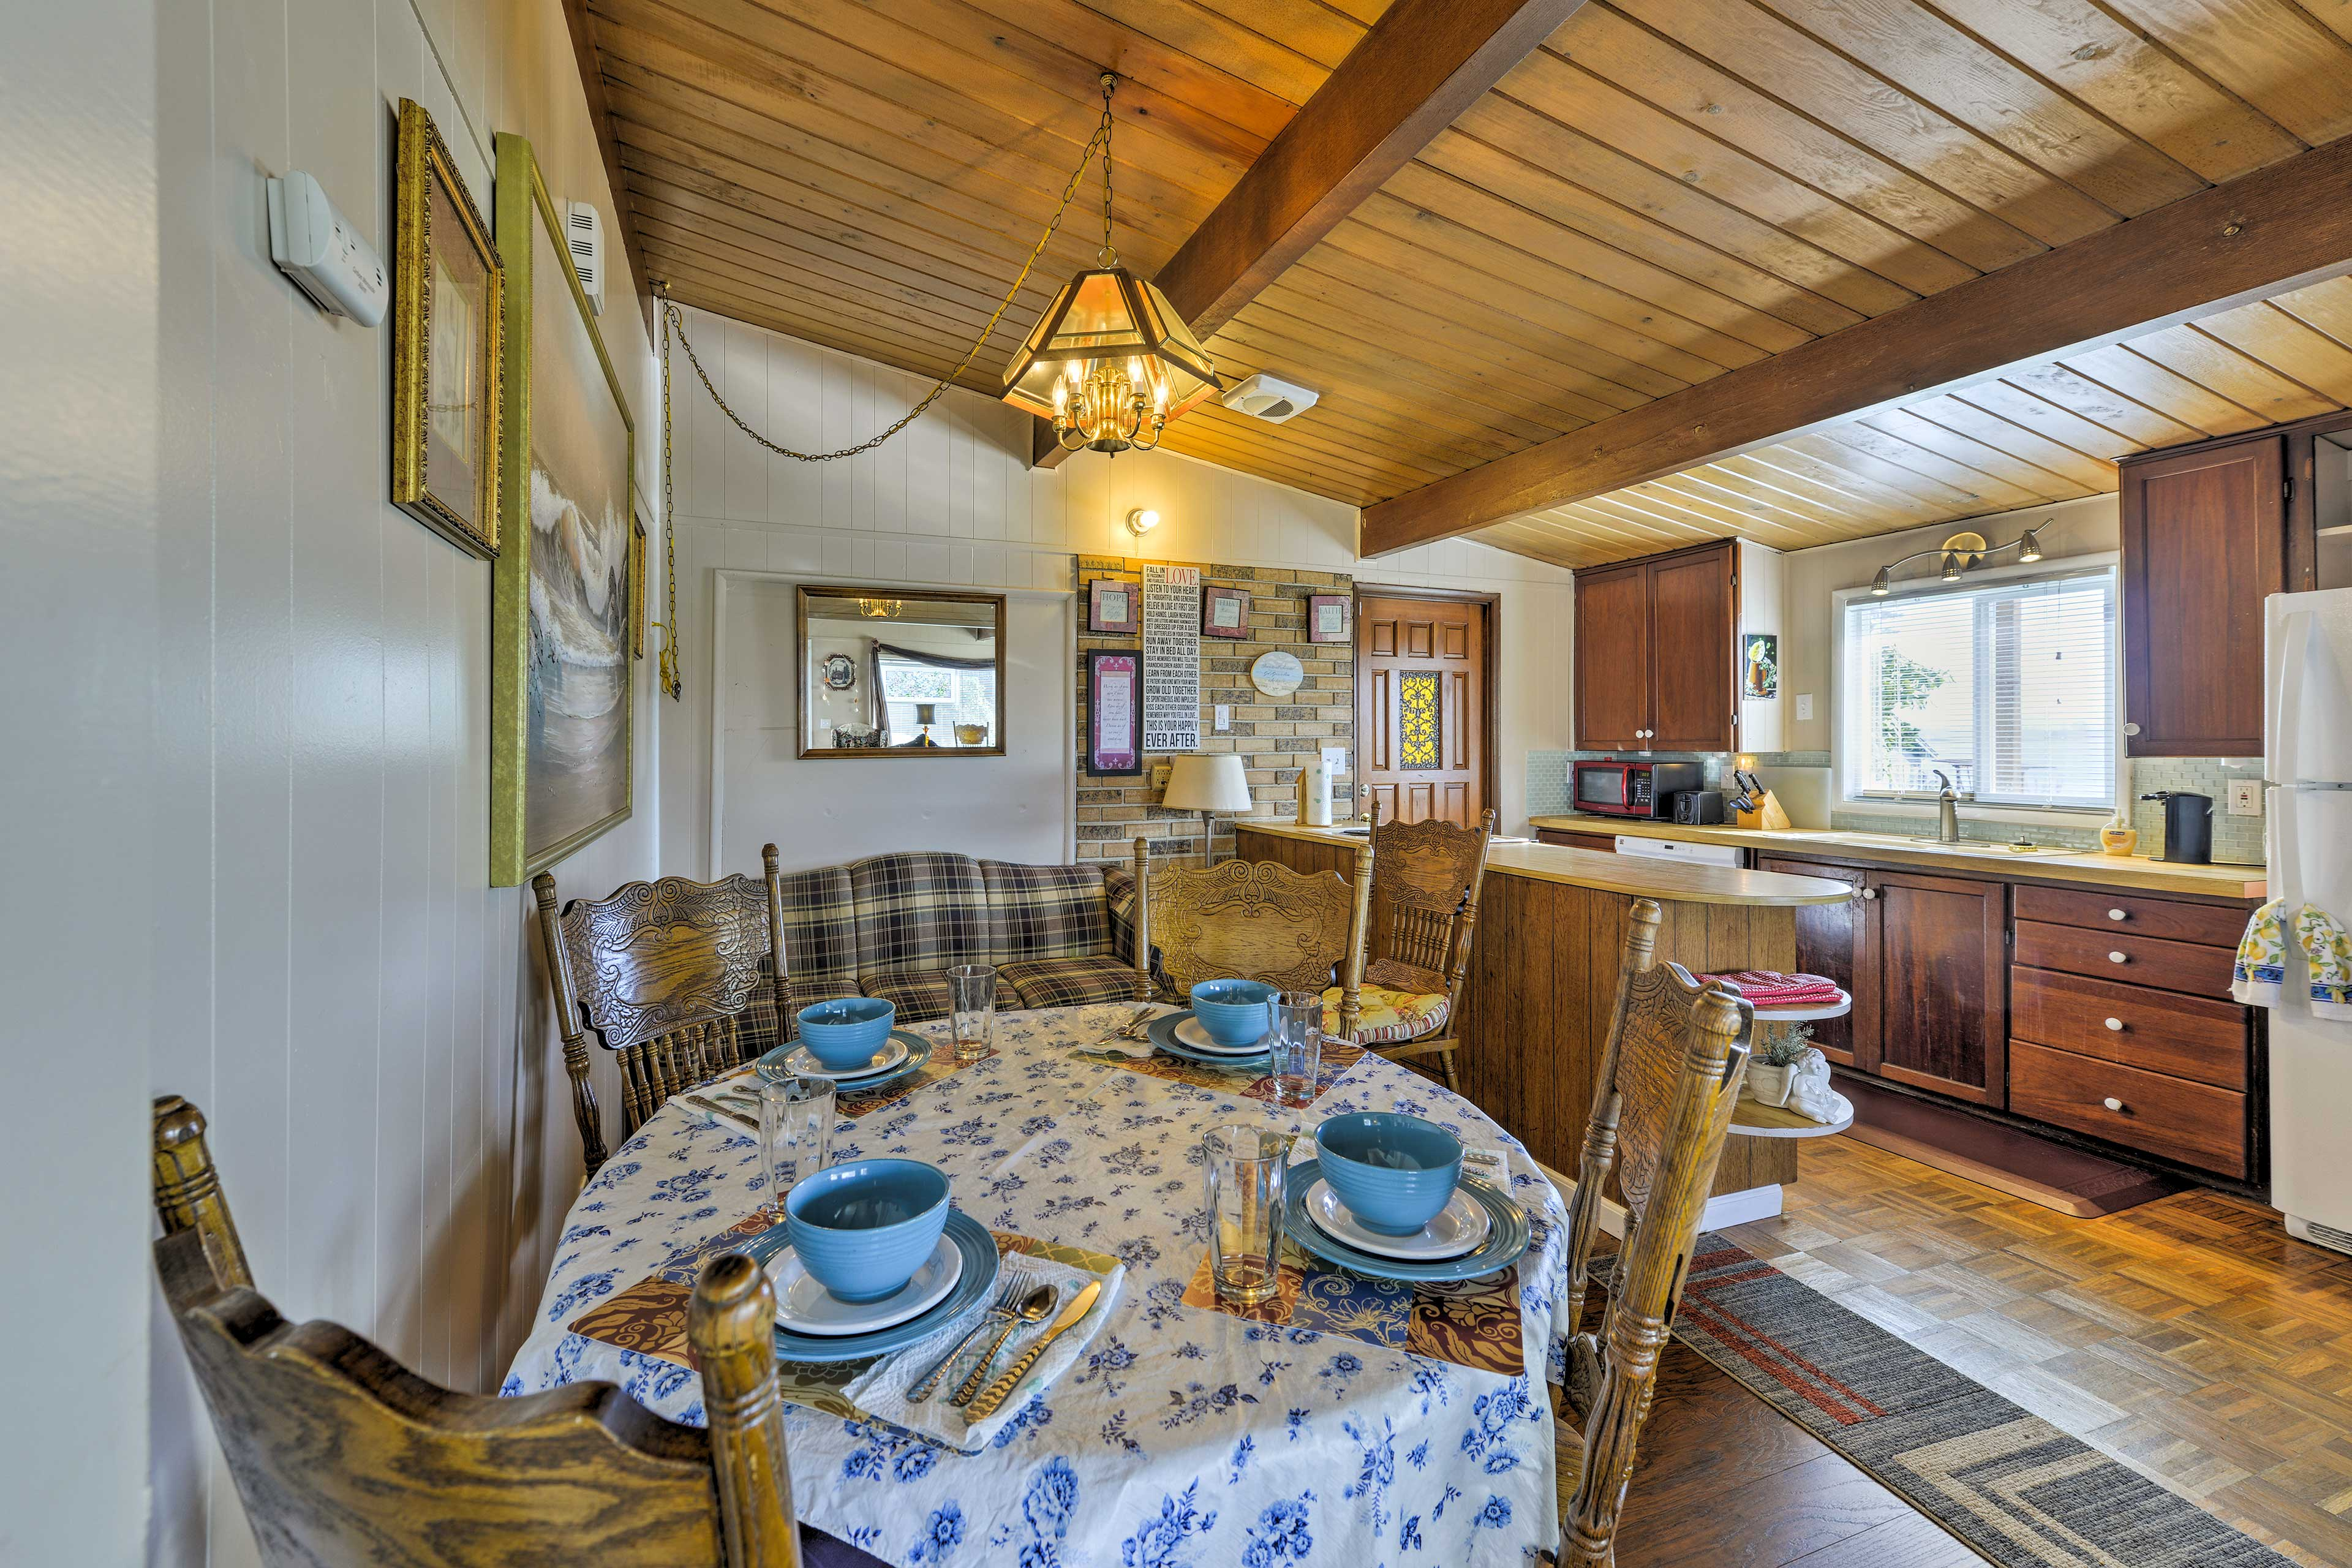 Gather around the 4-person kitchen table to savor meals.